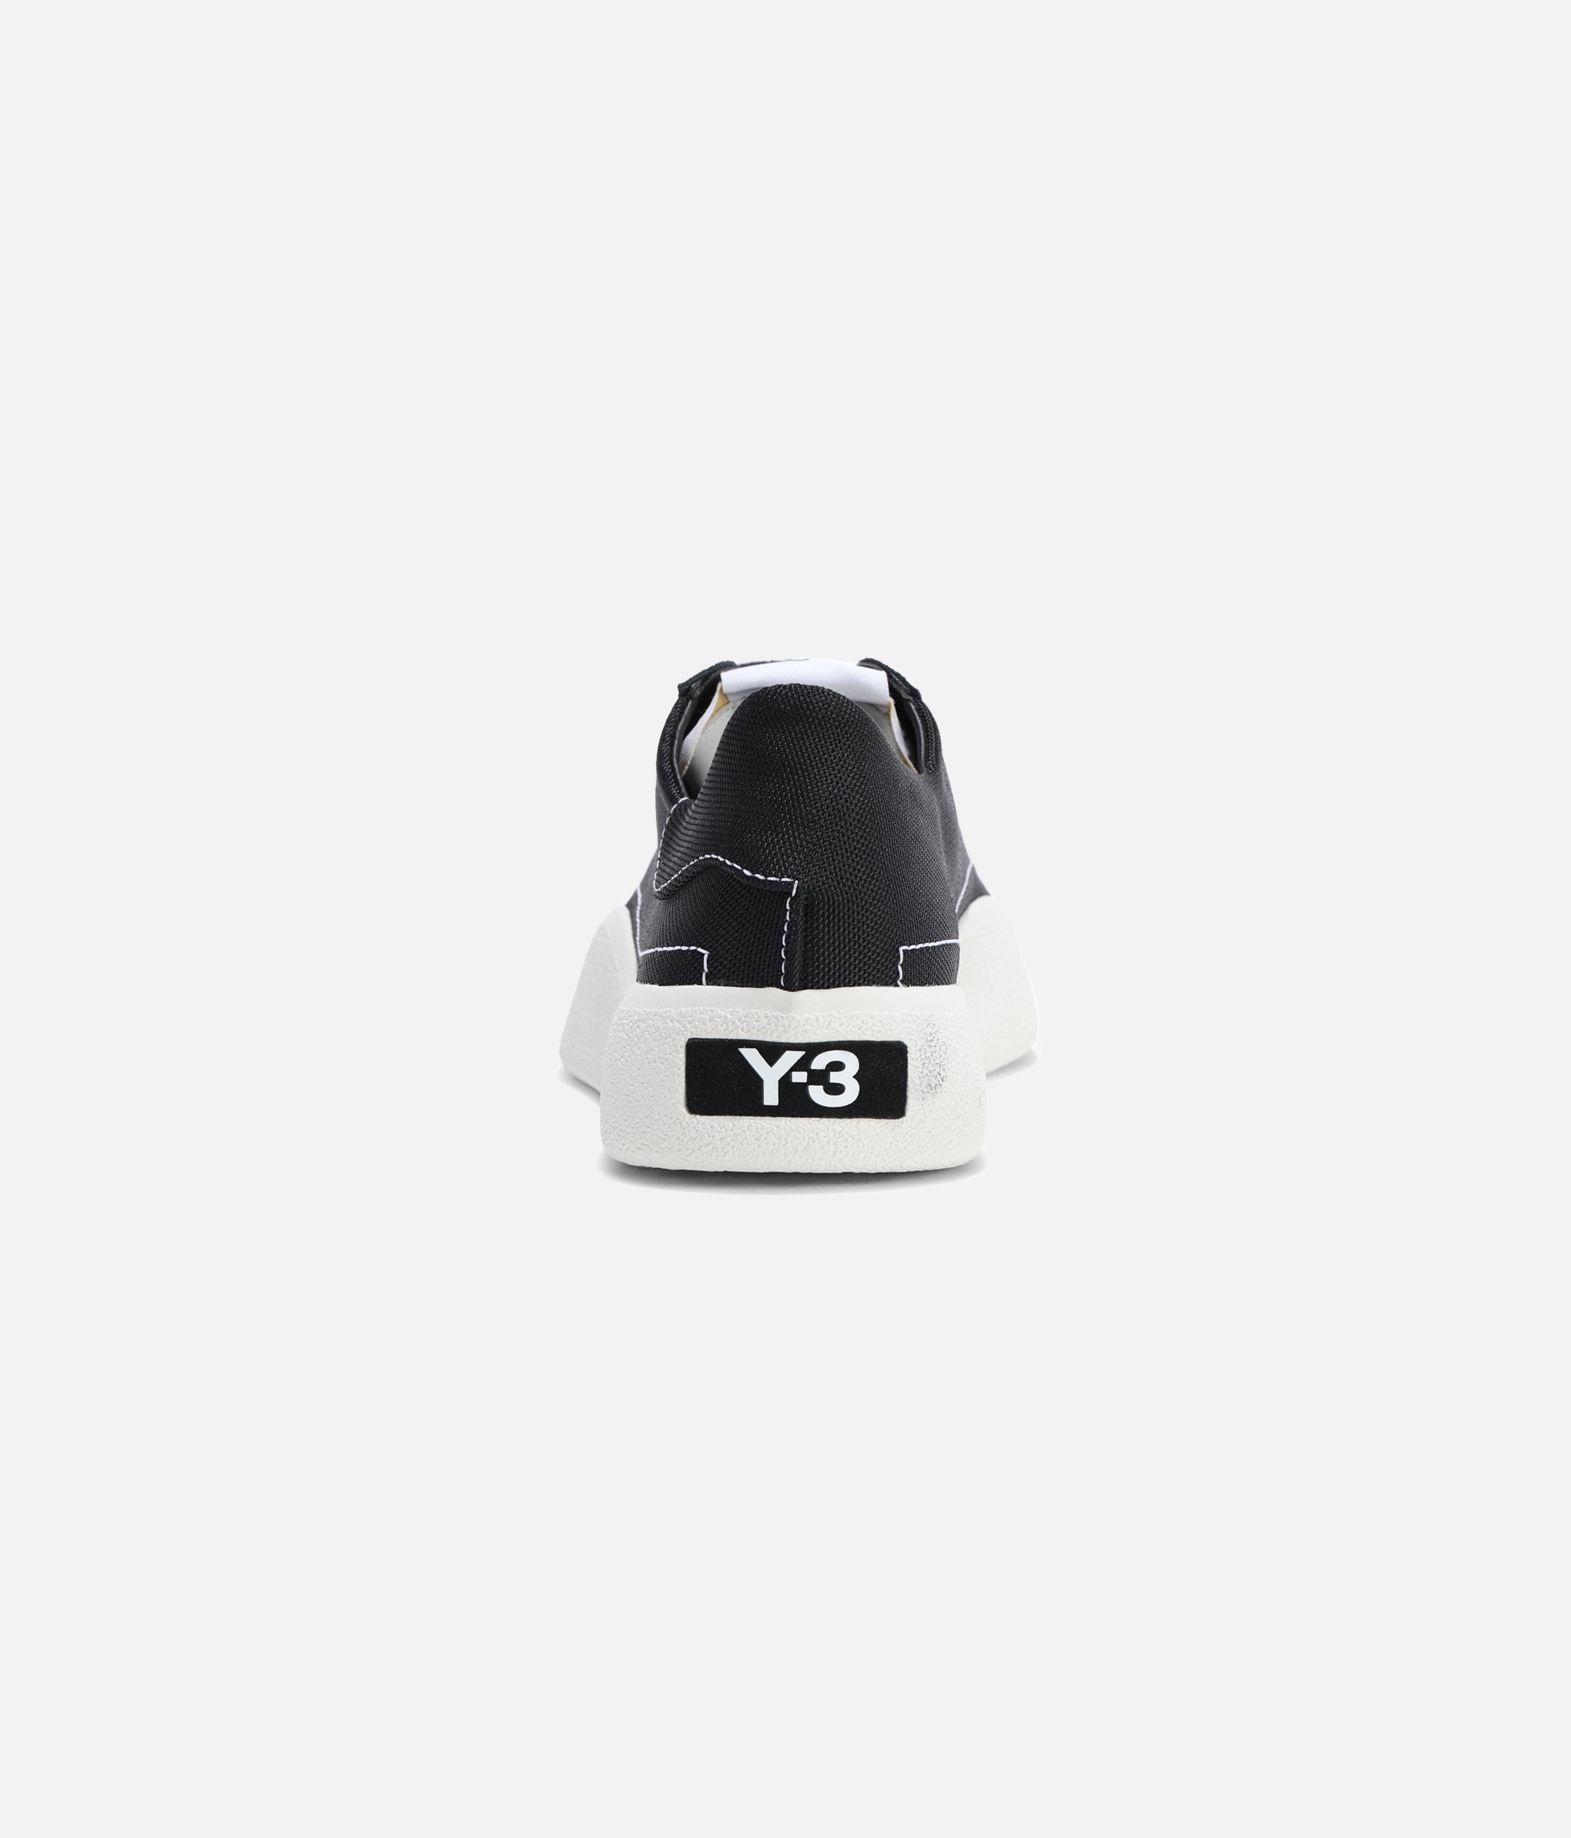 Y-3 Y-3 Tangutsu Lace Dress shoes E r